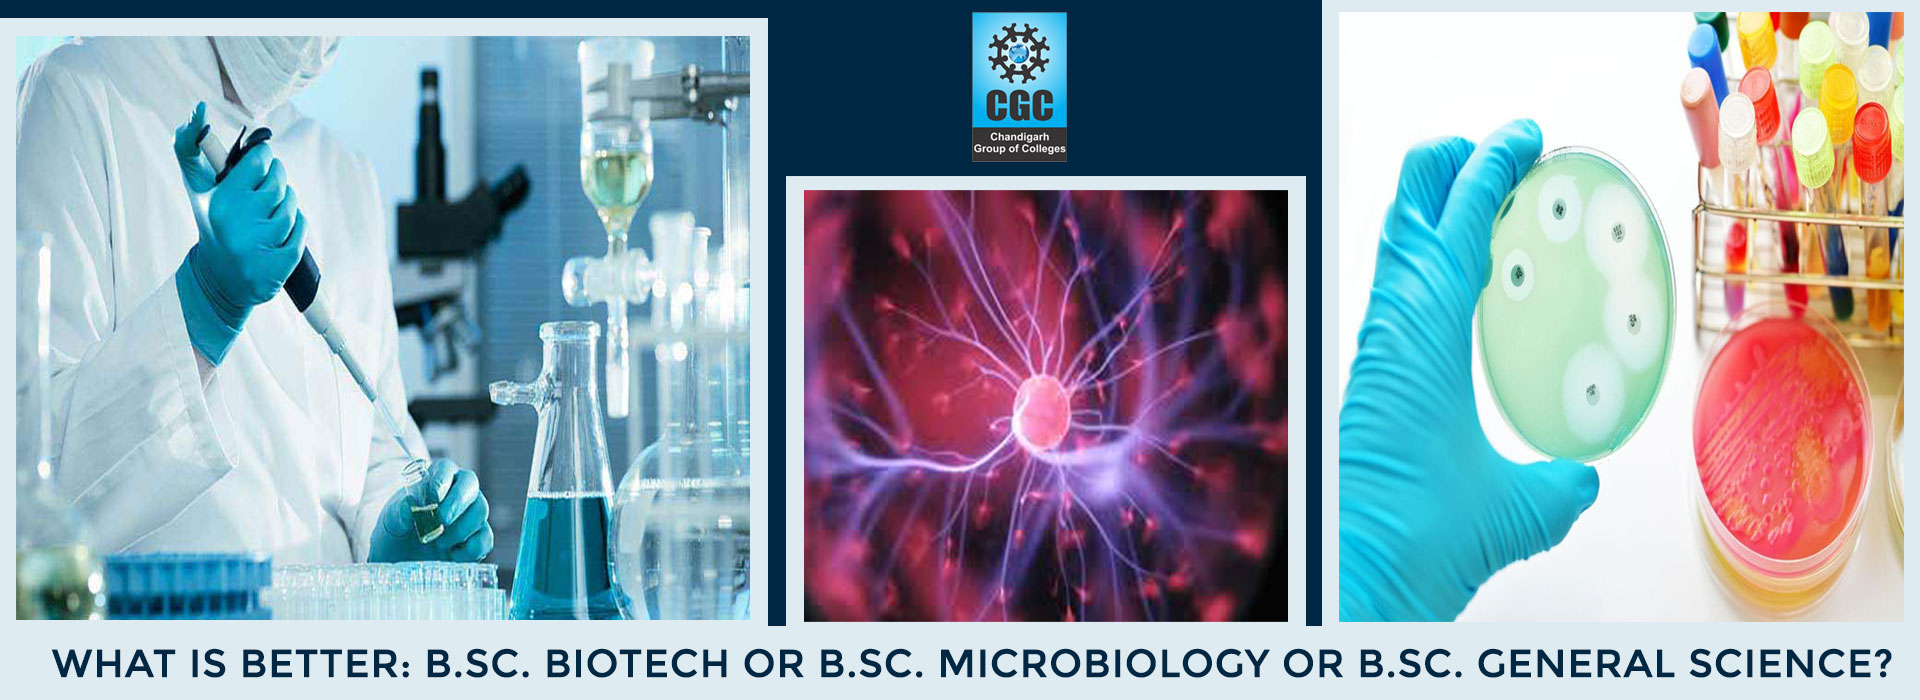 Which is better: B.Sc. Biotech / B.Sc. Microbiology or B.Sc. General Science?